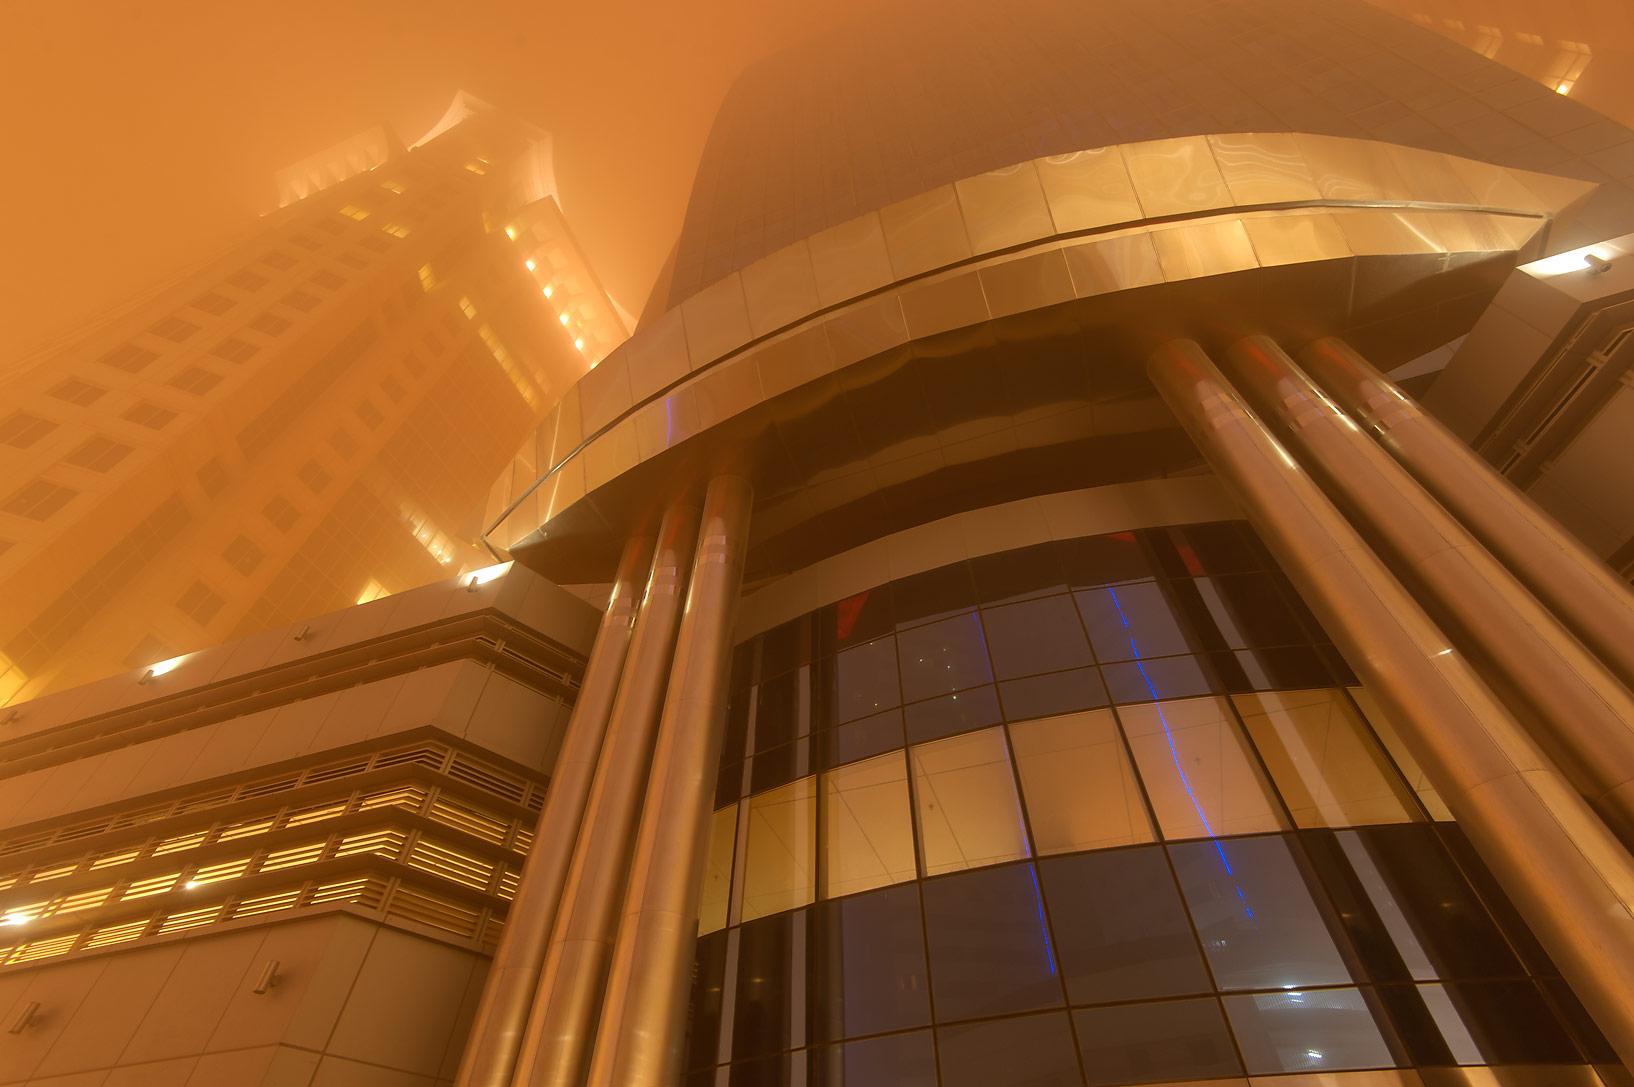 Entrance of Al Huda Engineering Works Tower in West Bay during dust storm. Doha, Qatar